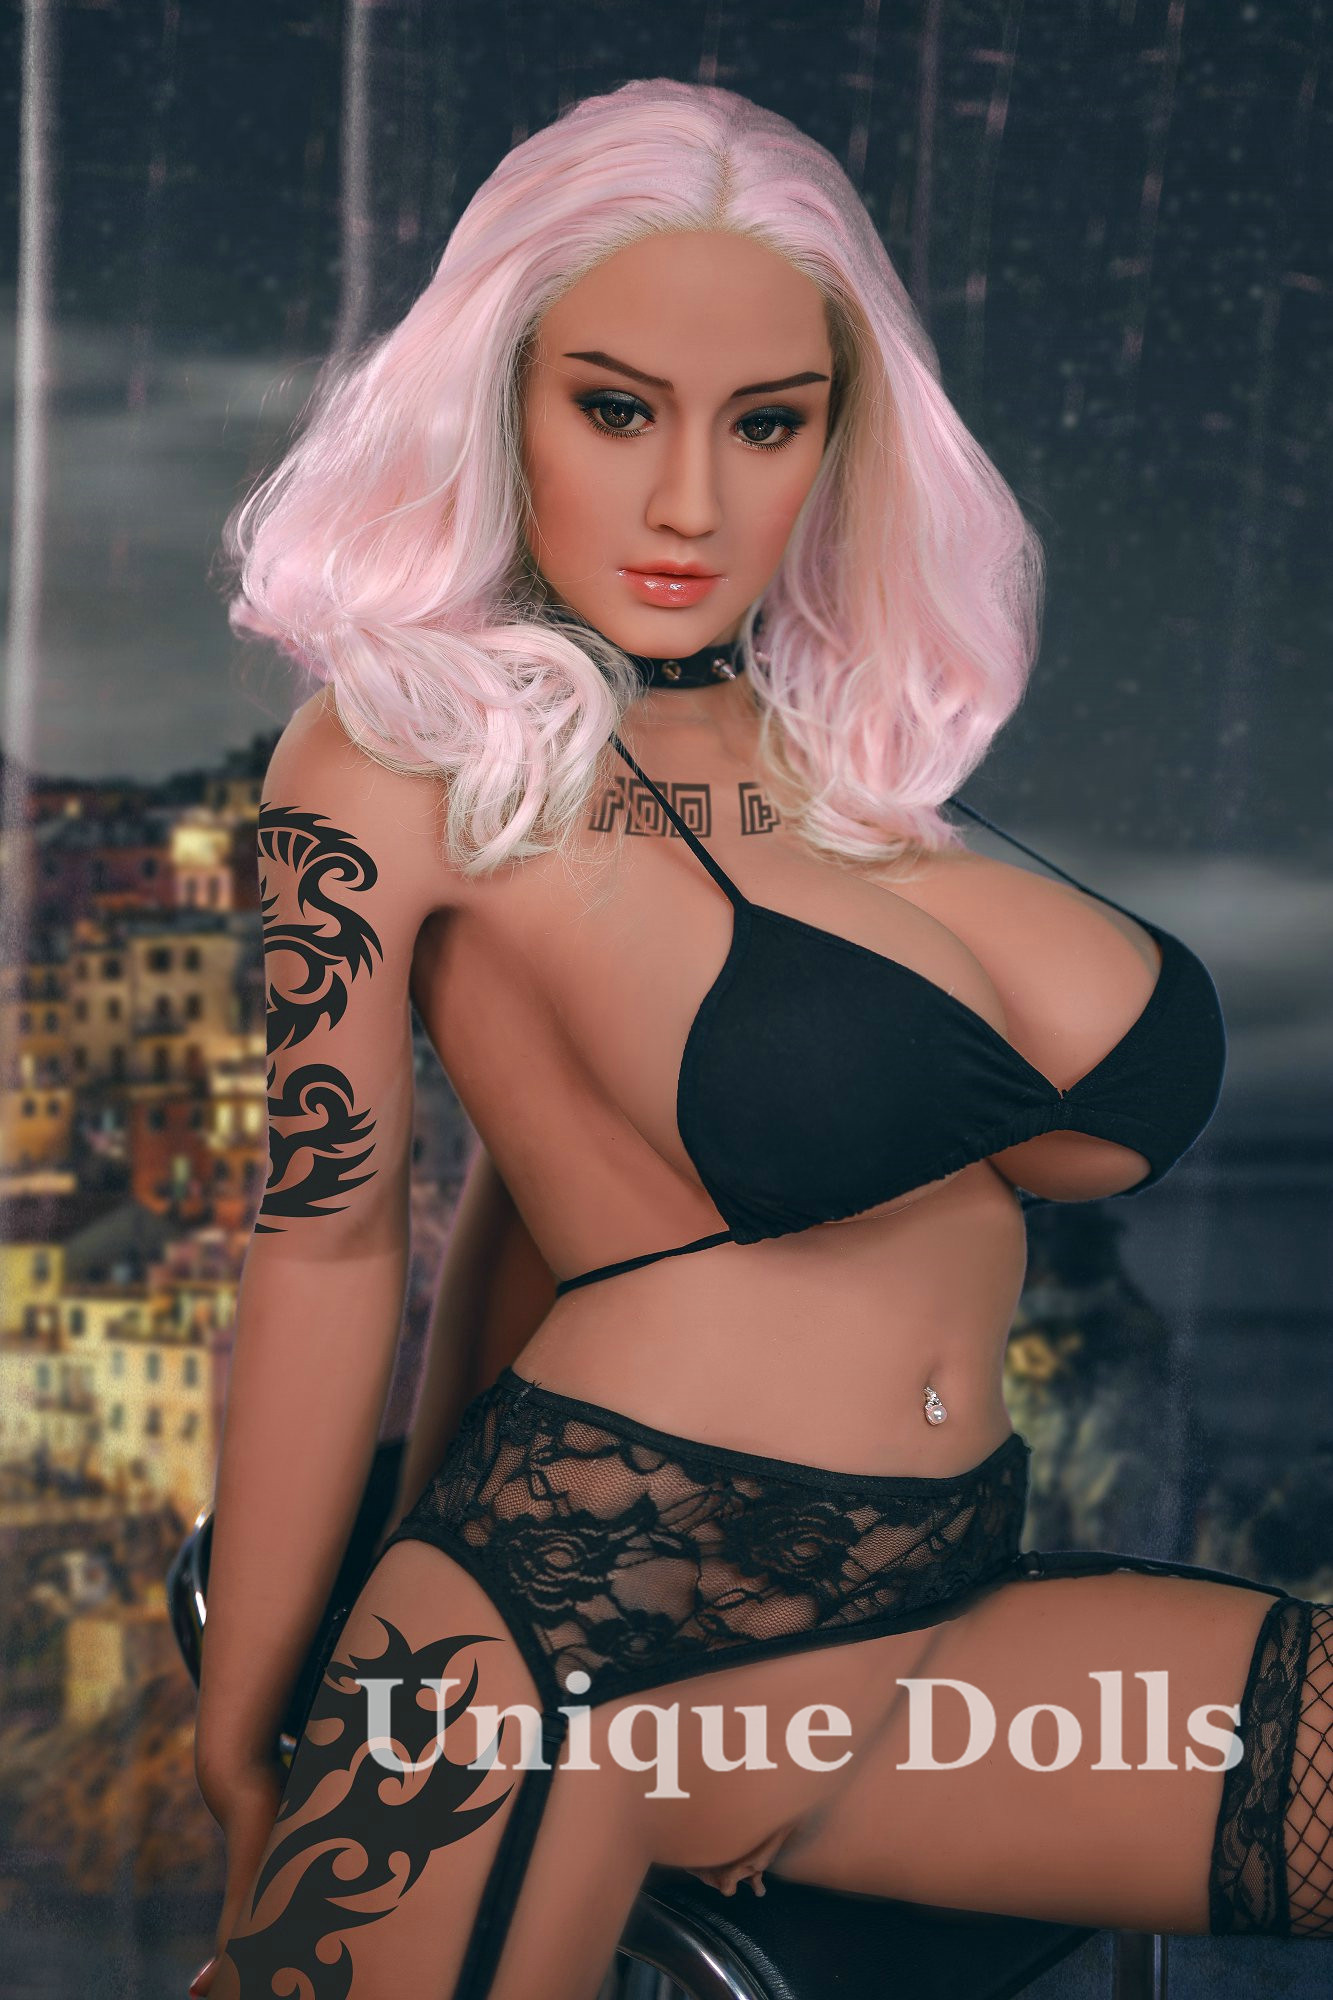 YL_Lecea sex doll